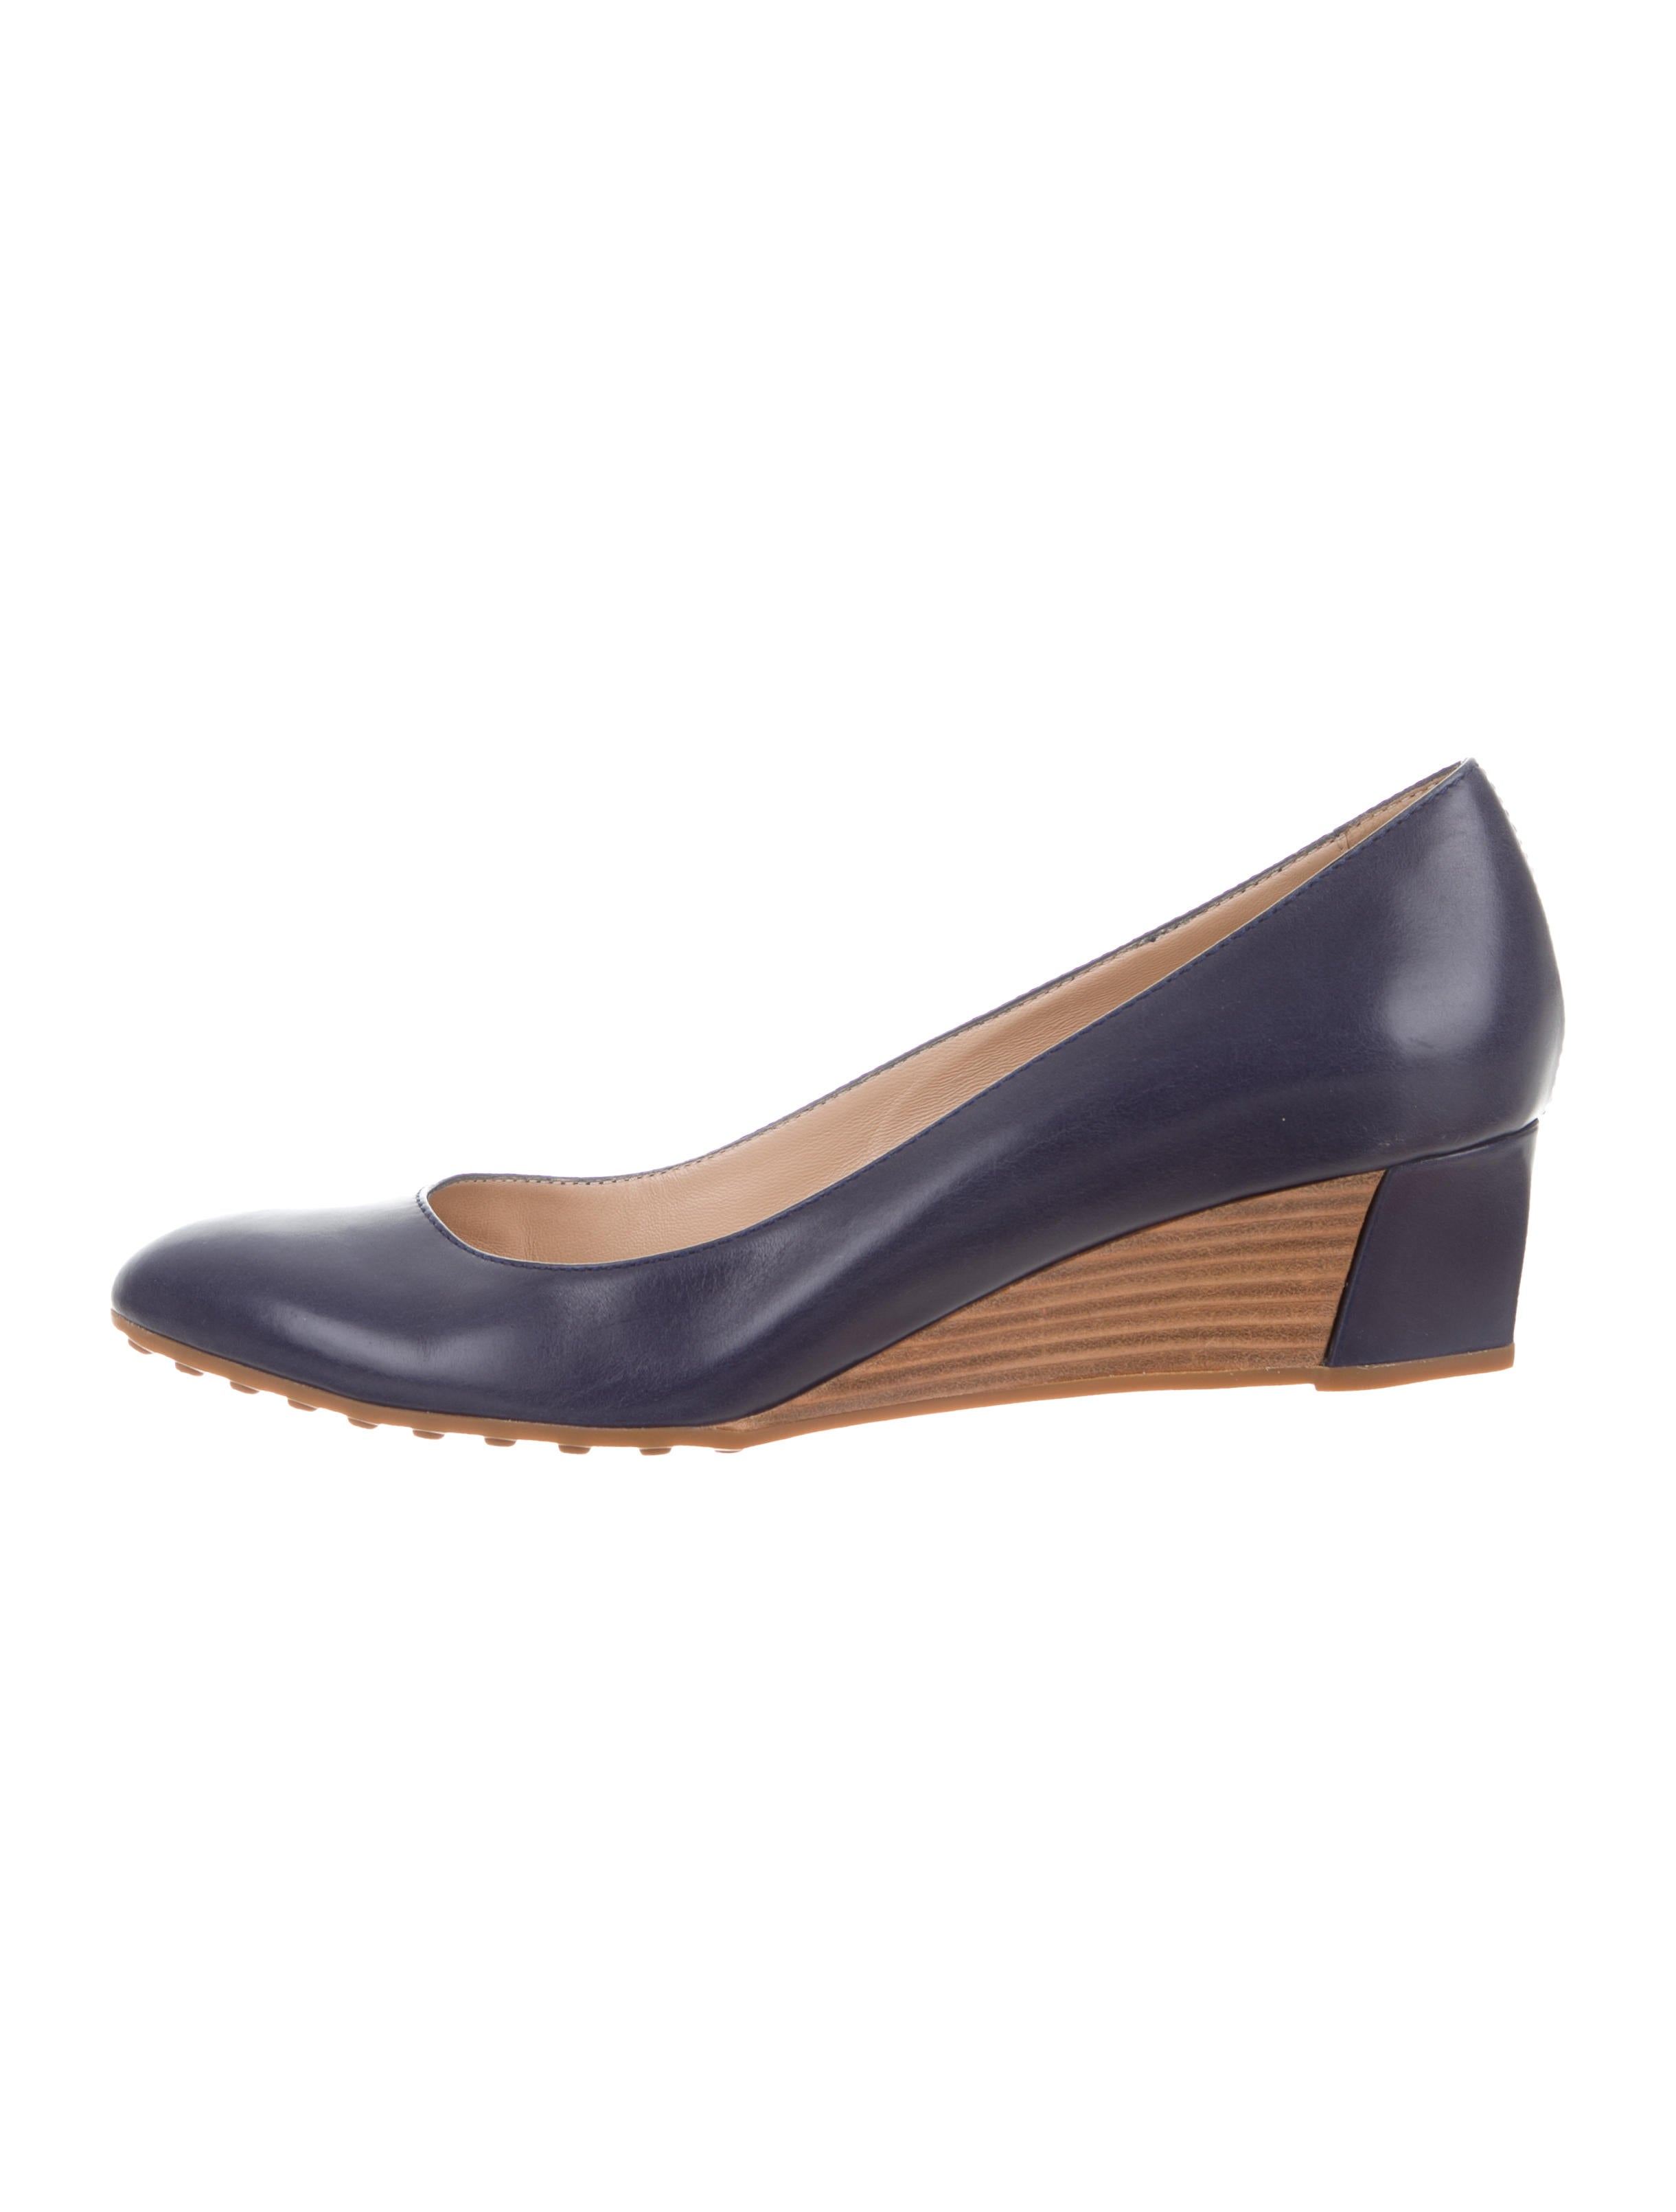 buy cheap 100% authentic Tod's Round-Toe Wedge Pumps discount for sale OTUFp1ZzX